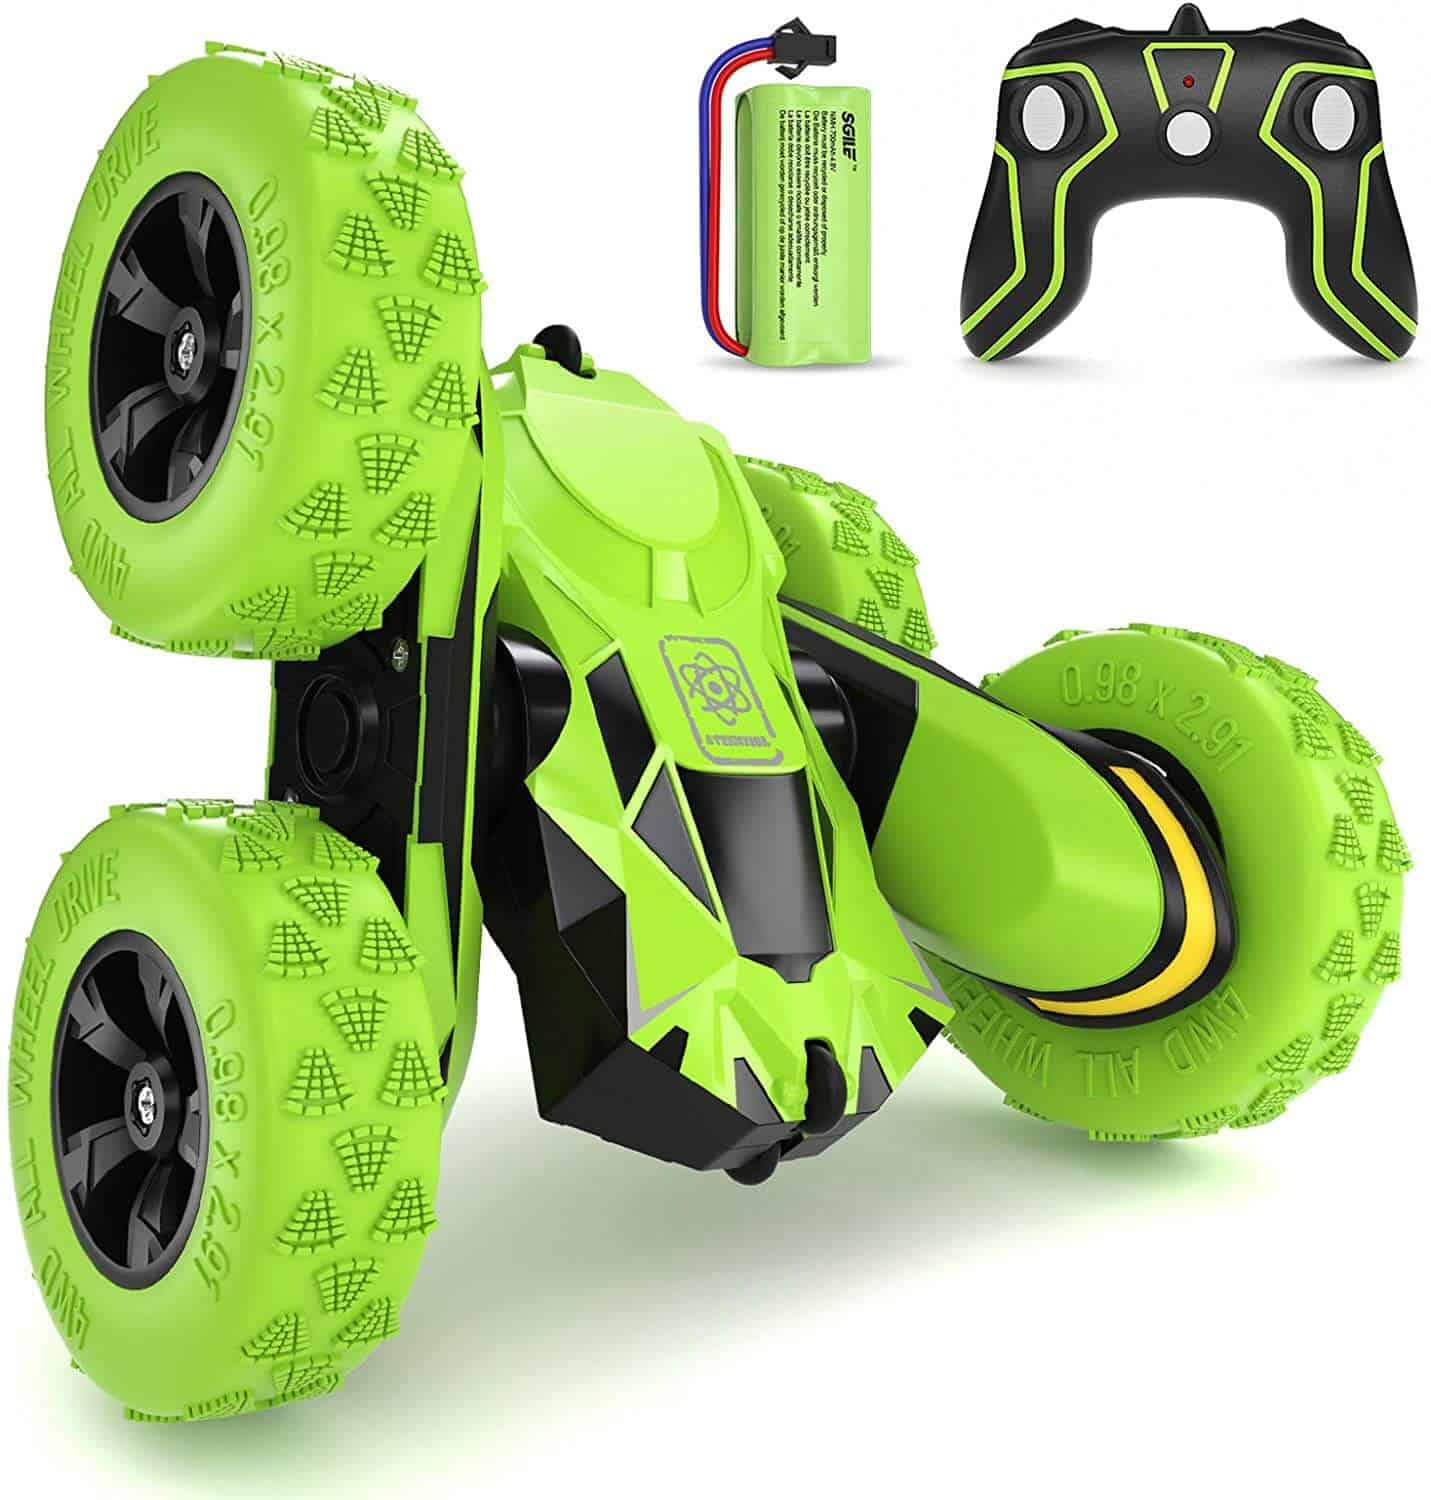 The Best Remote Control Toys For Christmas - RC Stunt Car